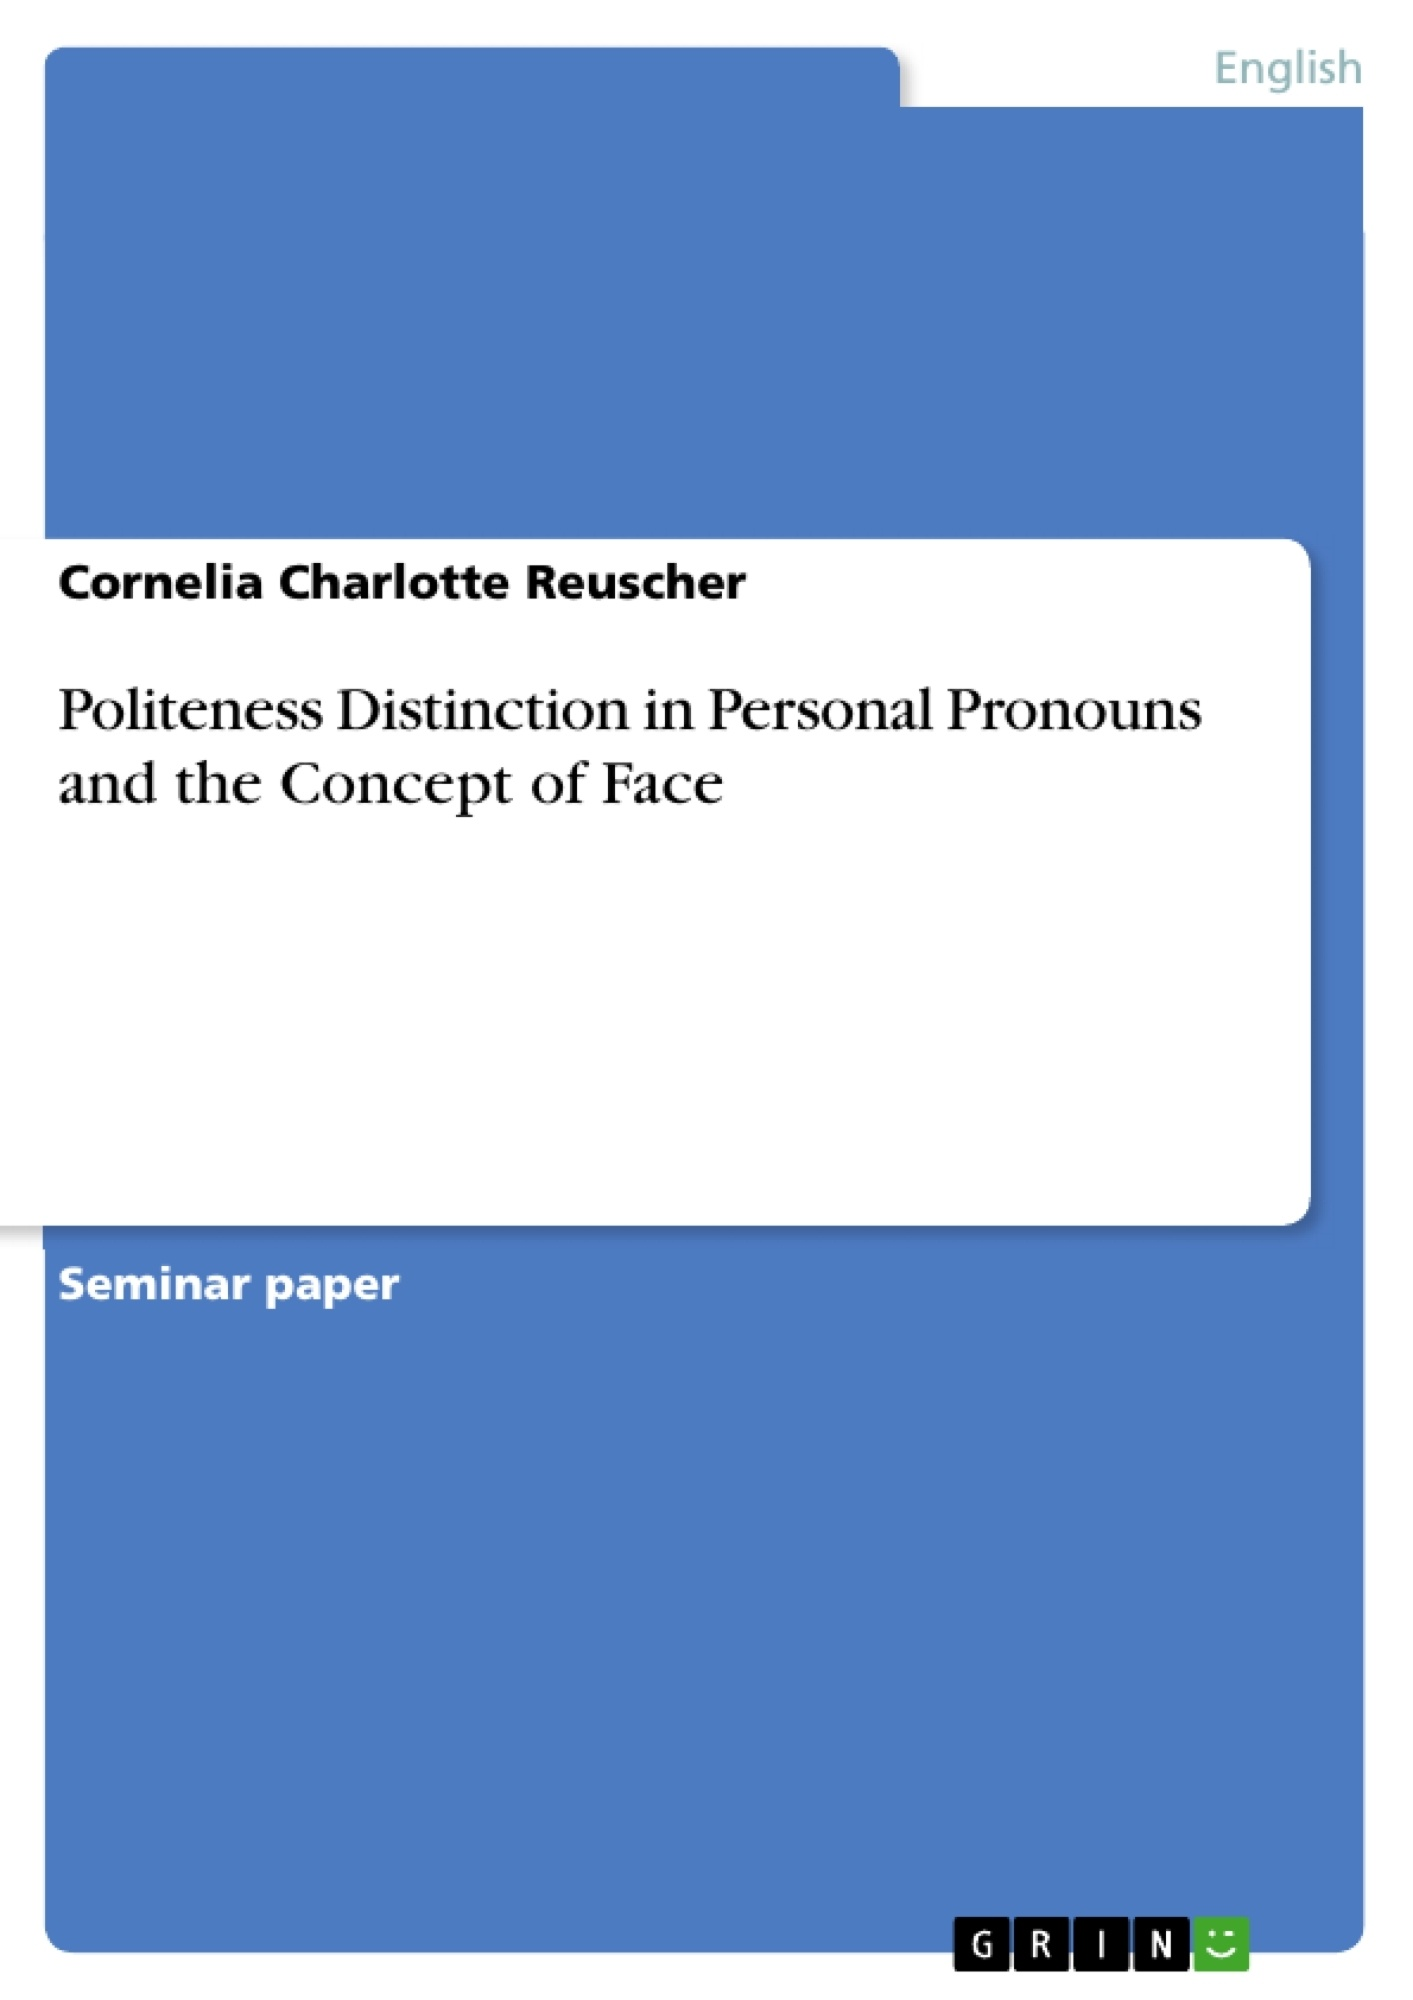 Title: Politeness Distinction in Personal Pronouns and the Concept of Face